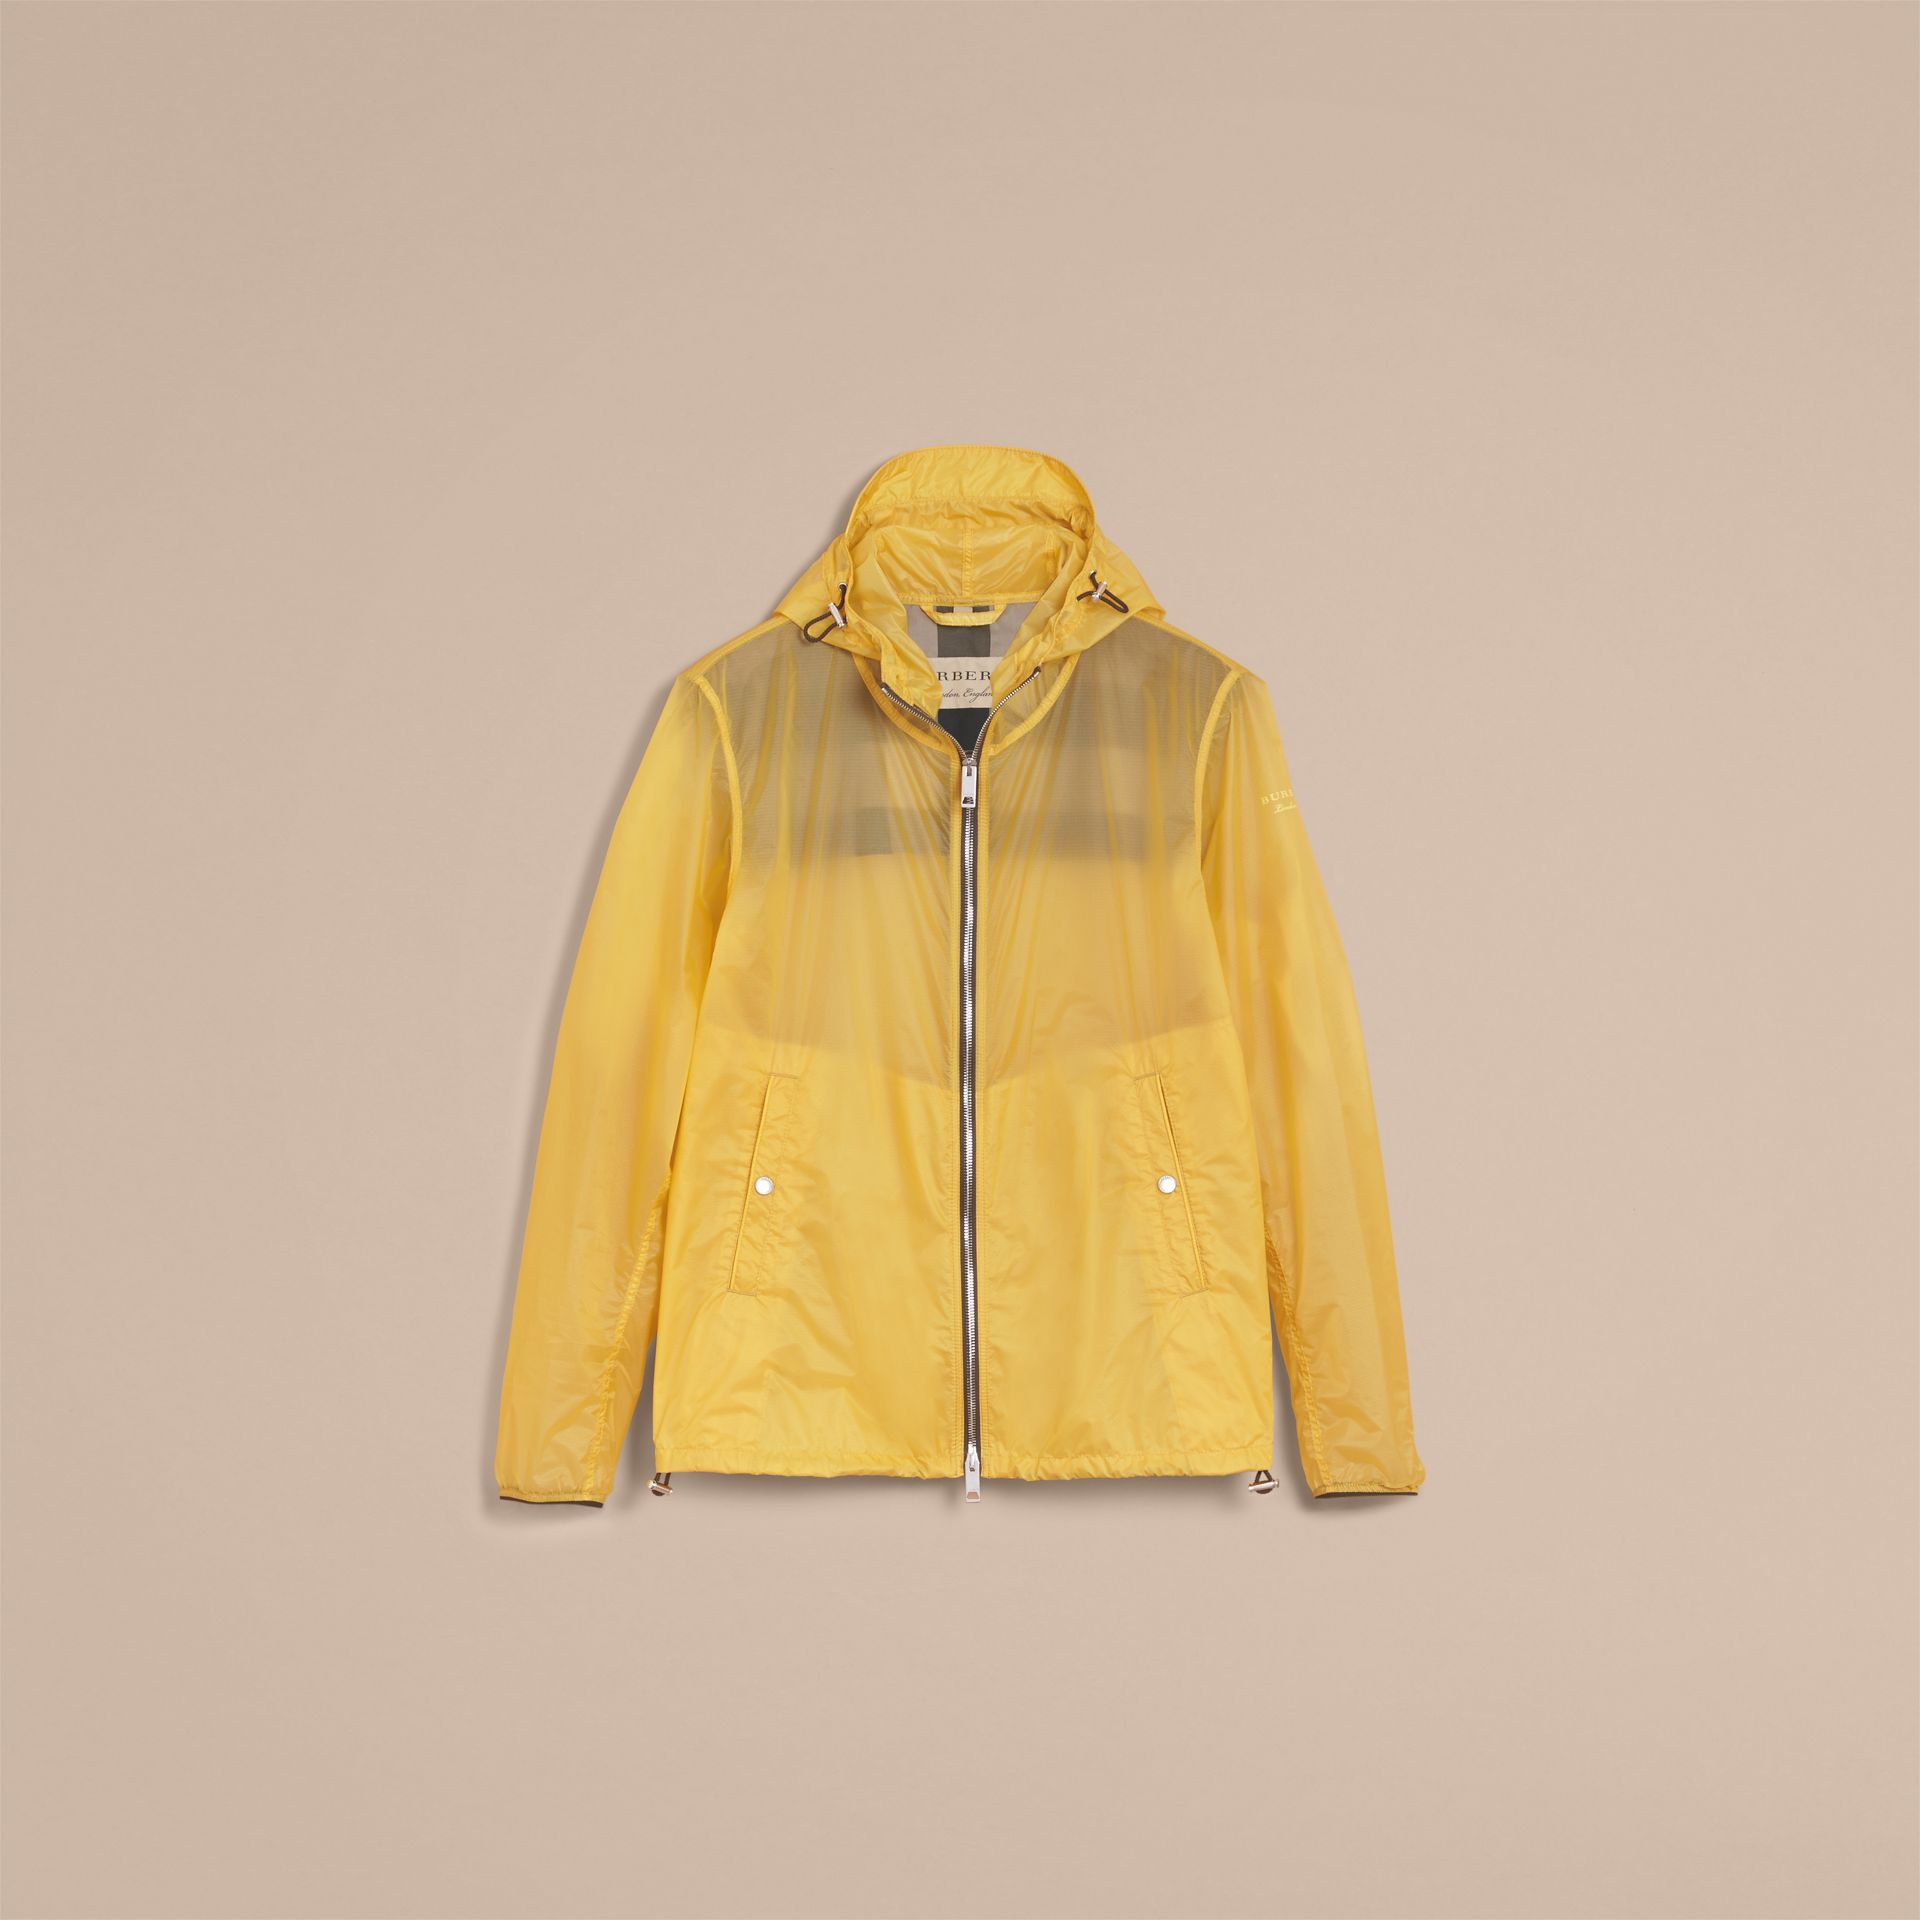 Hooded Super-lightweight Jacket in Pale Yellow - Men | Burberry - gallery image 3